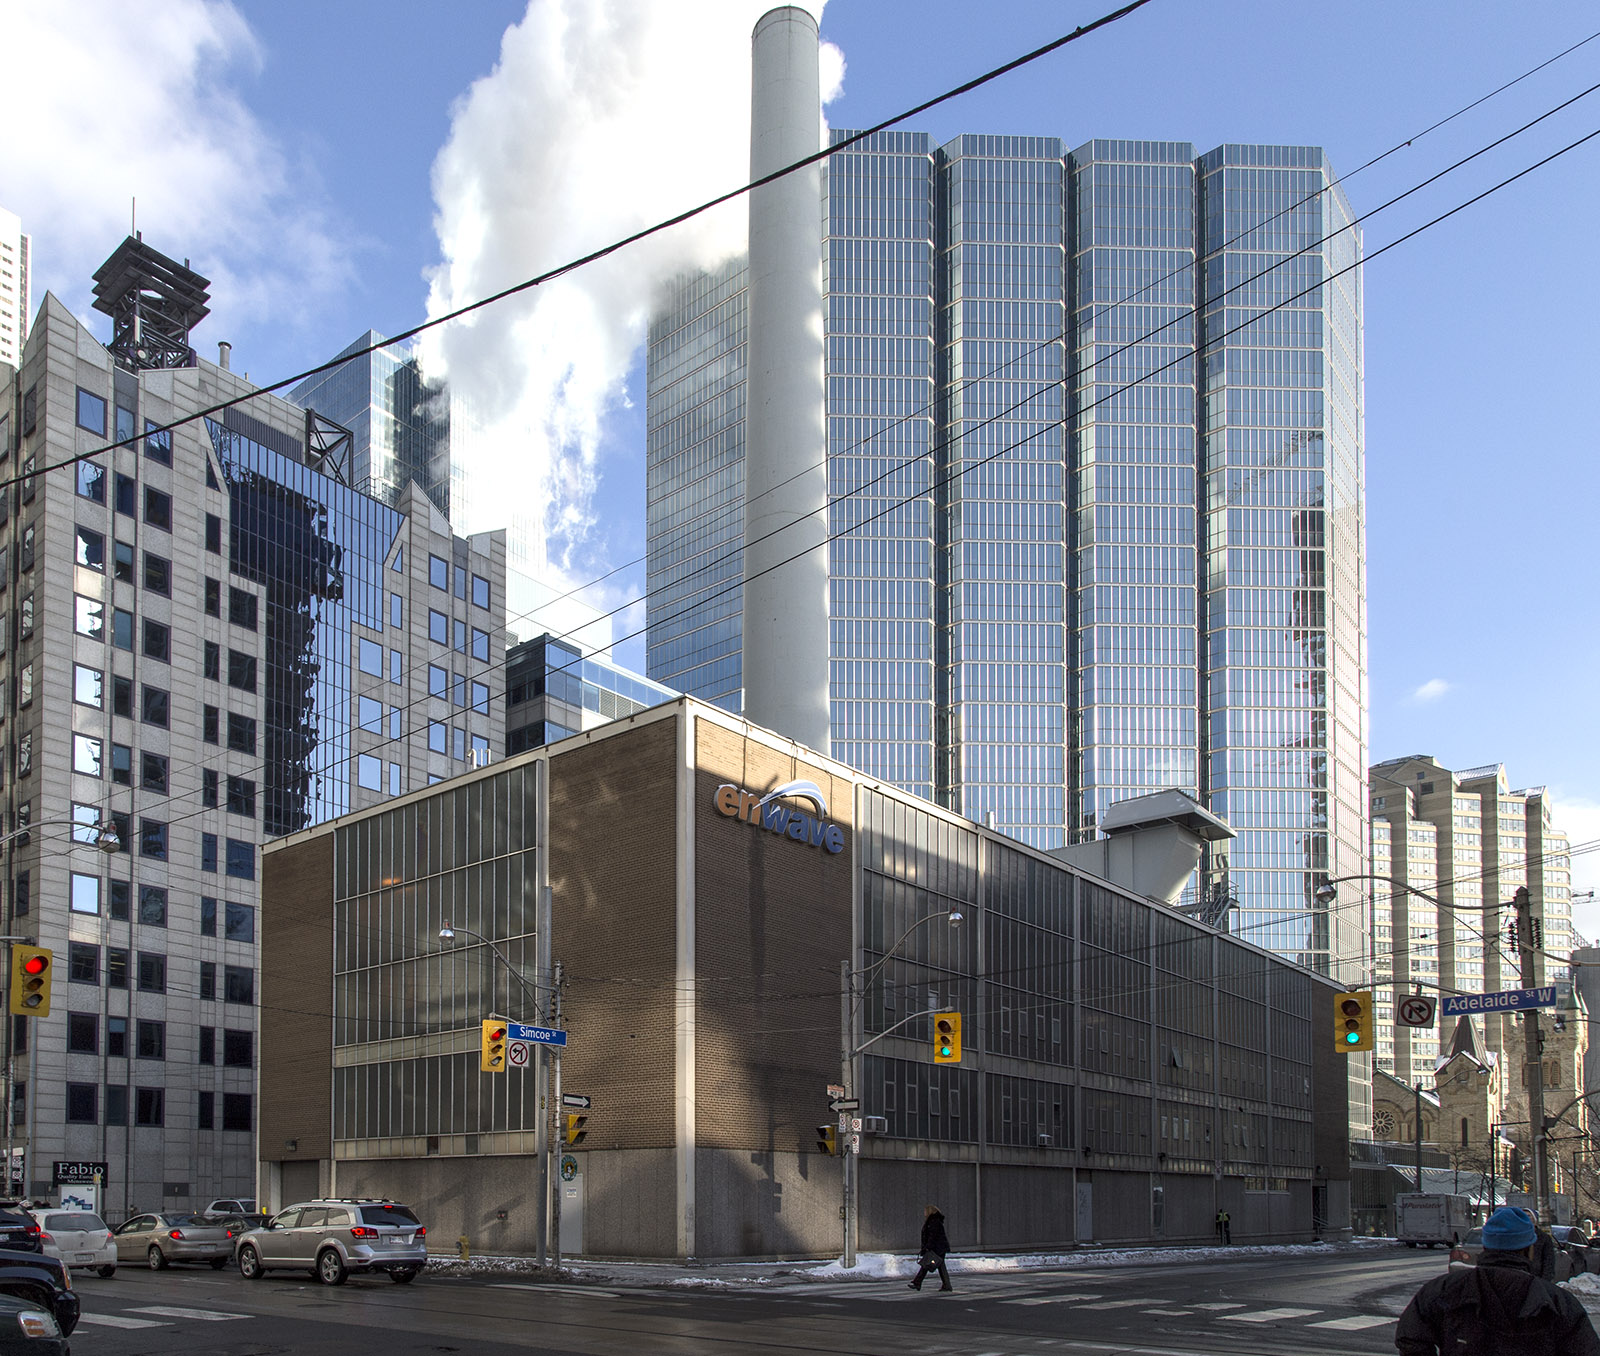 20140211. Enwave's Pearl Street Station generates steam to heat 140 buildings in downtown Toronto.